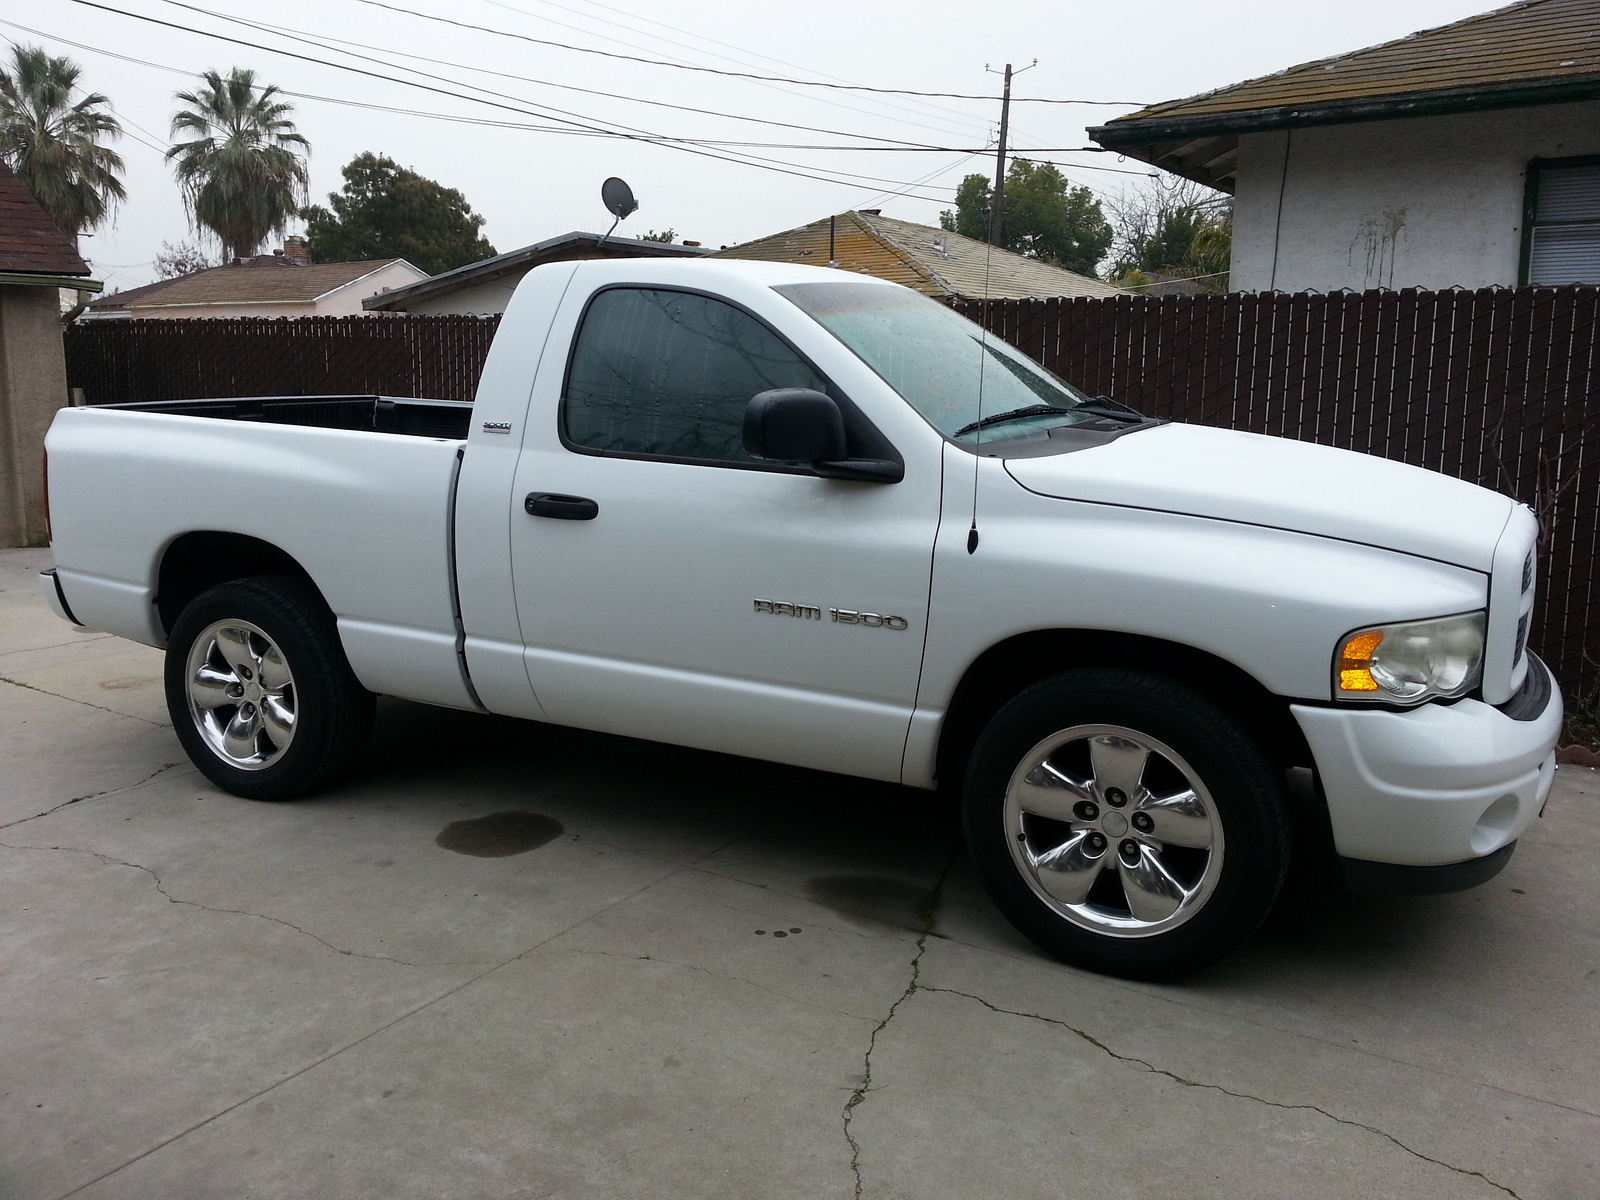 2002 dodge ram pickup 1500 information and photos zombiedrive. Black Bedroom Furniture Sets. Home Design Ideas